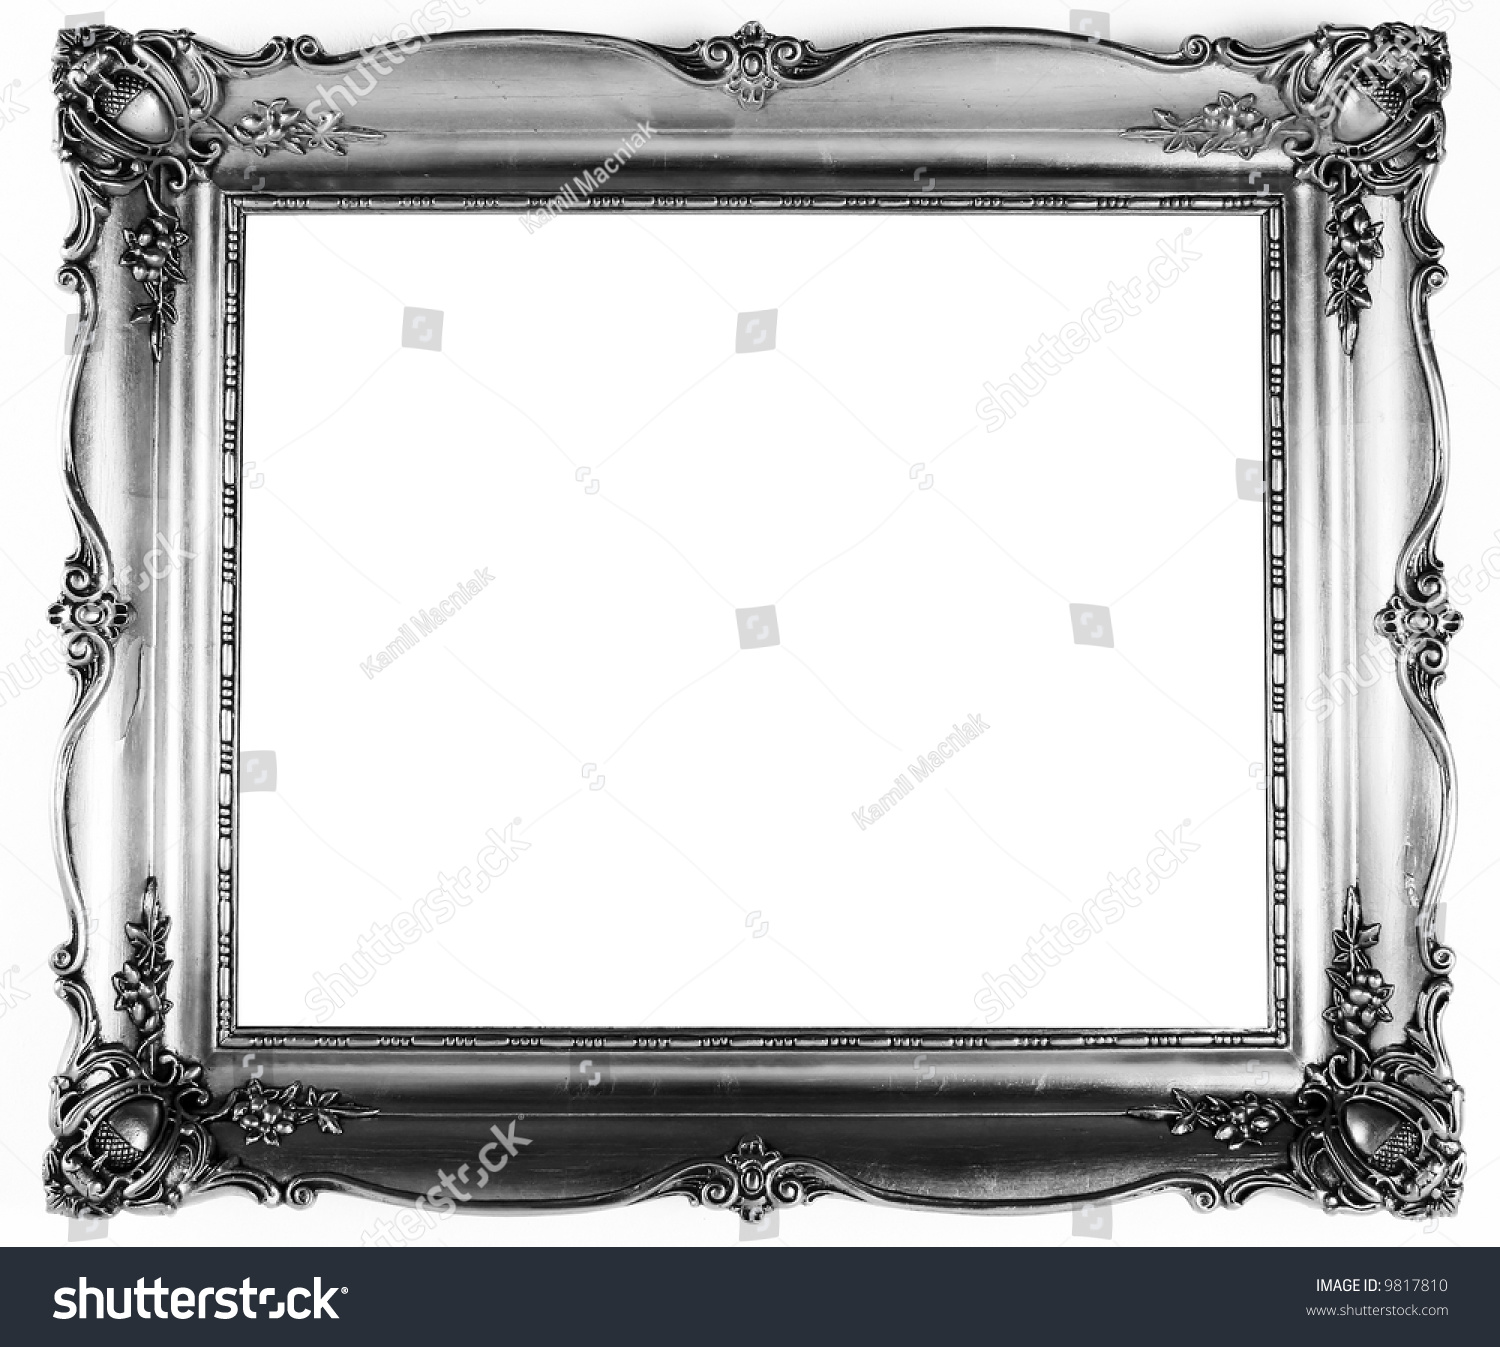 old antique silver frame over white background stock photo. Black Bedroom Furniture Sets. Home Design Ideas